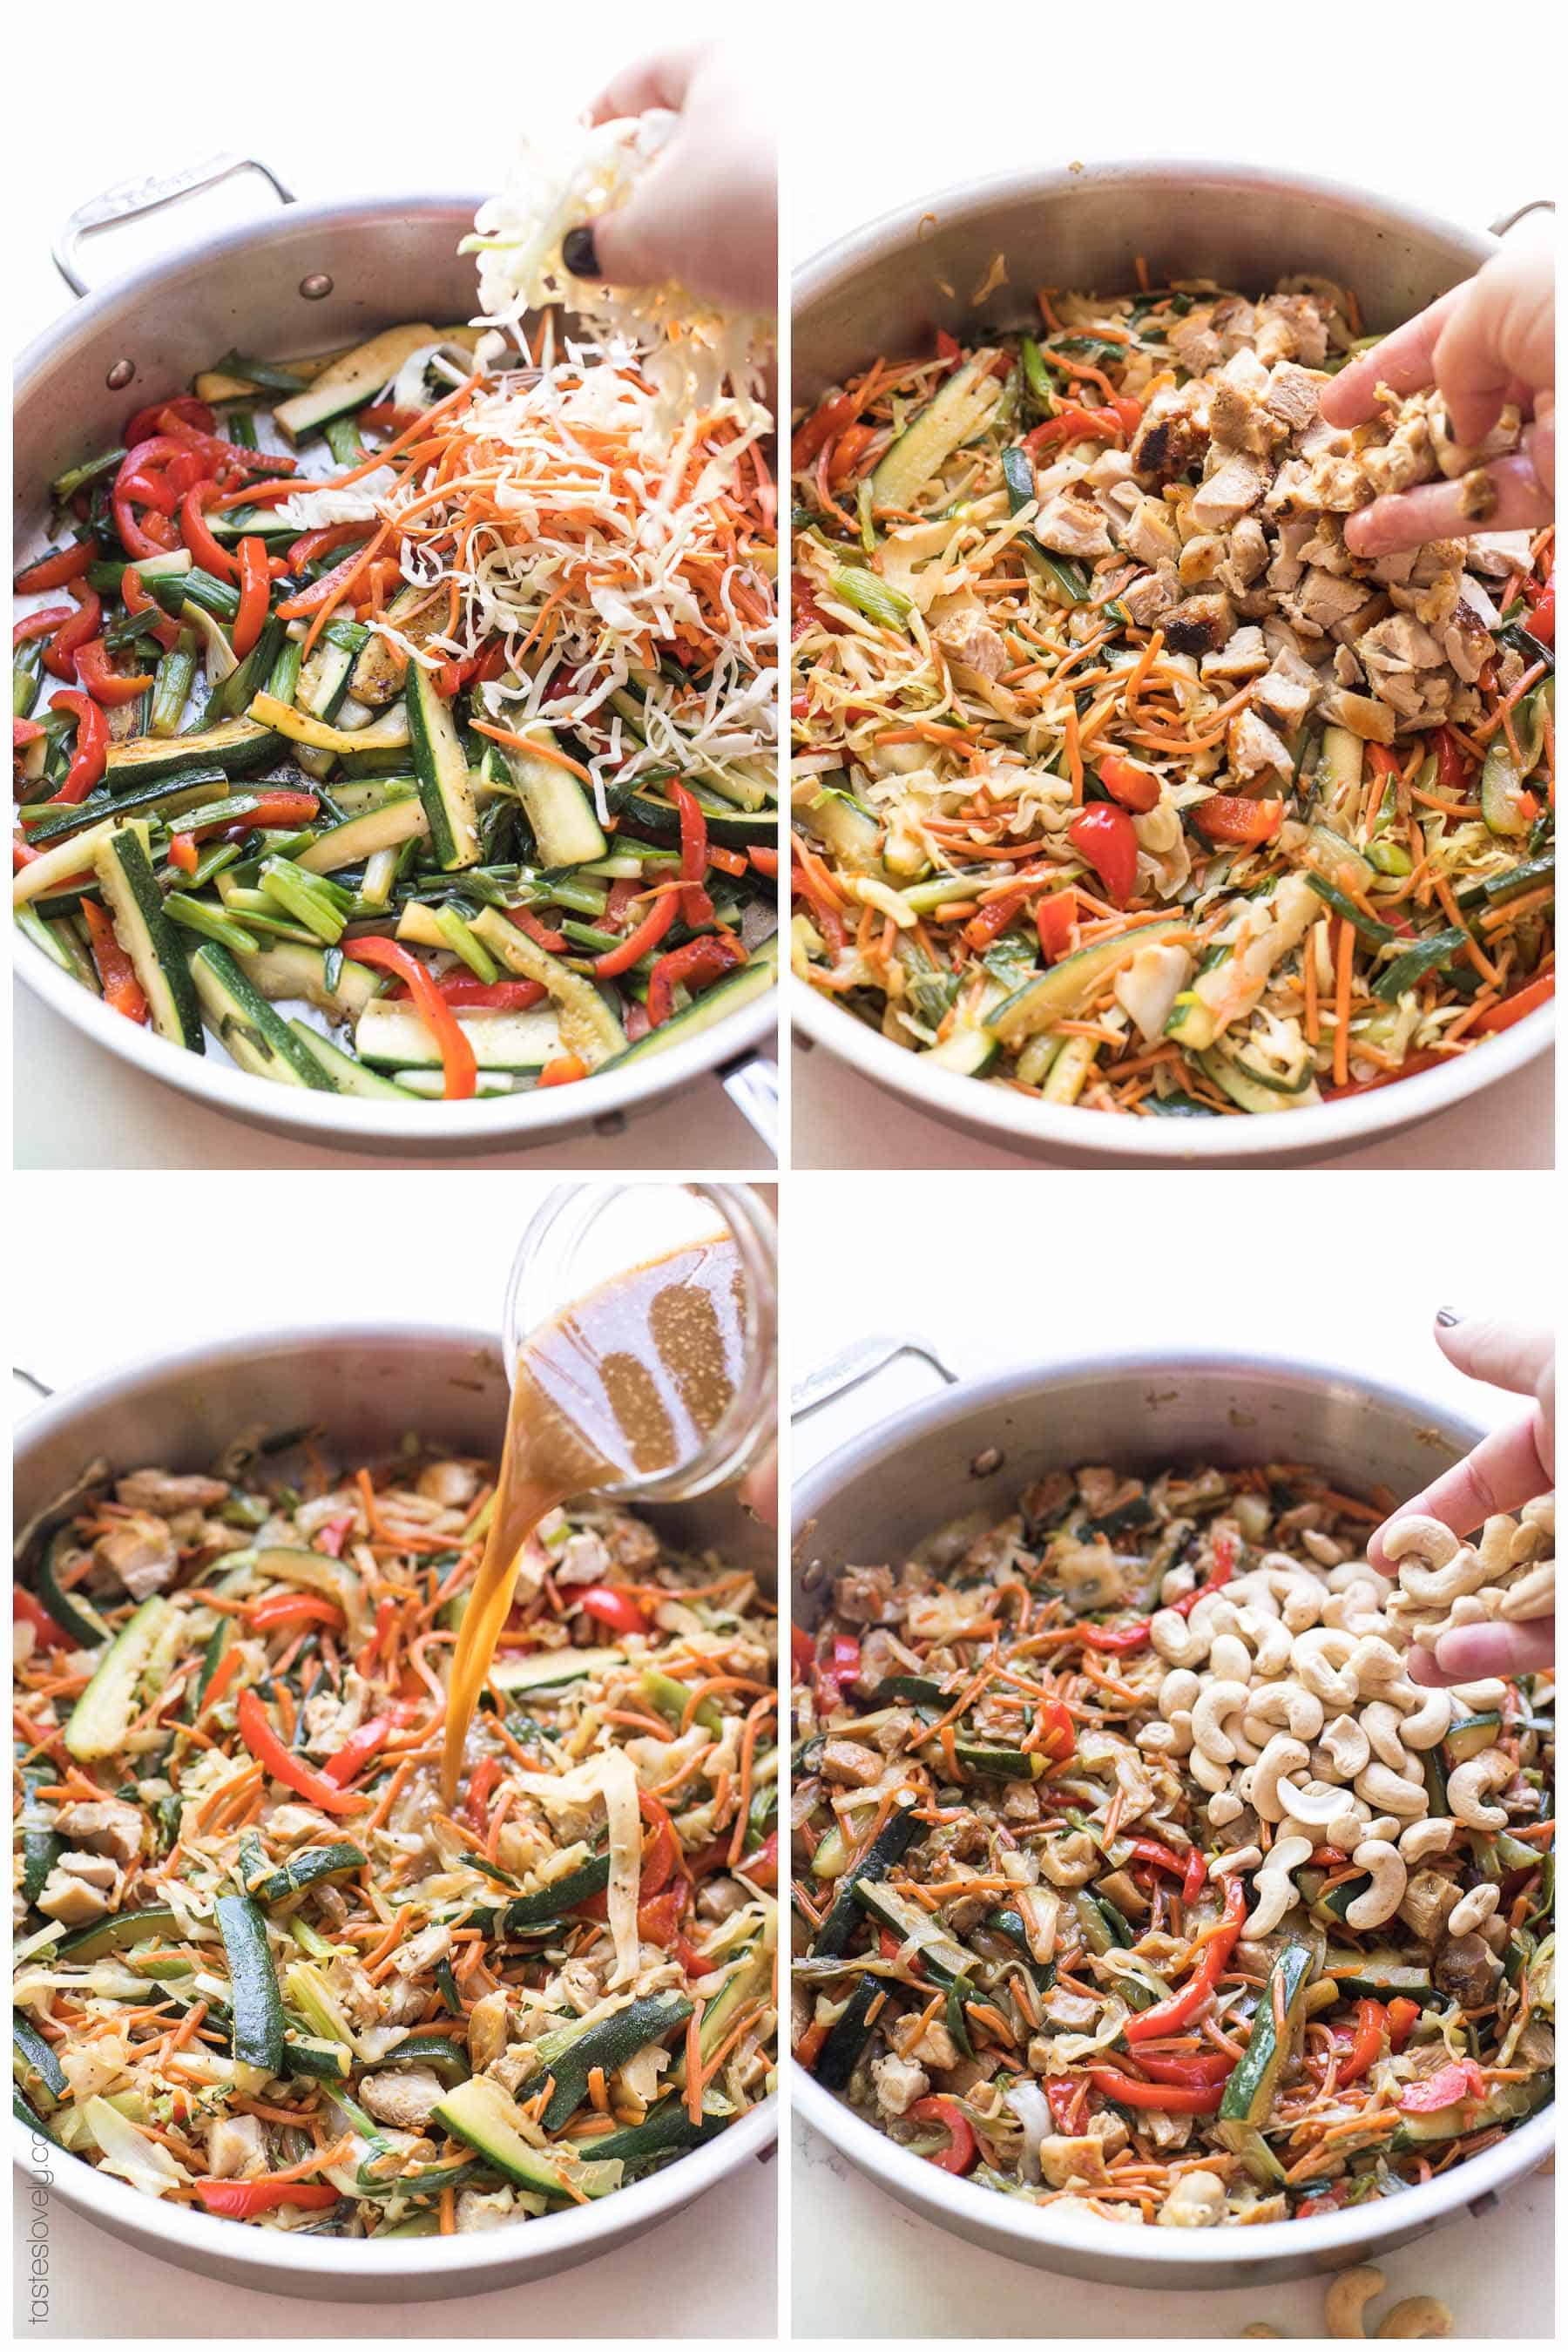 The steps of making chicken stir fry